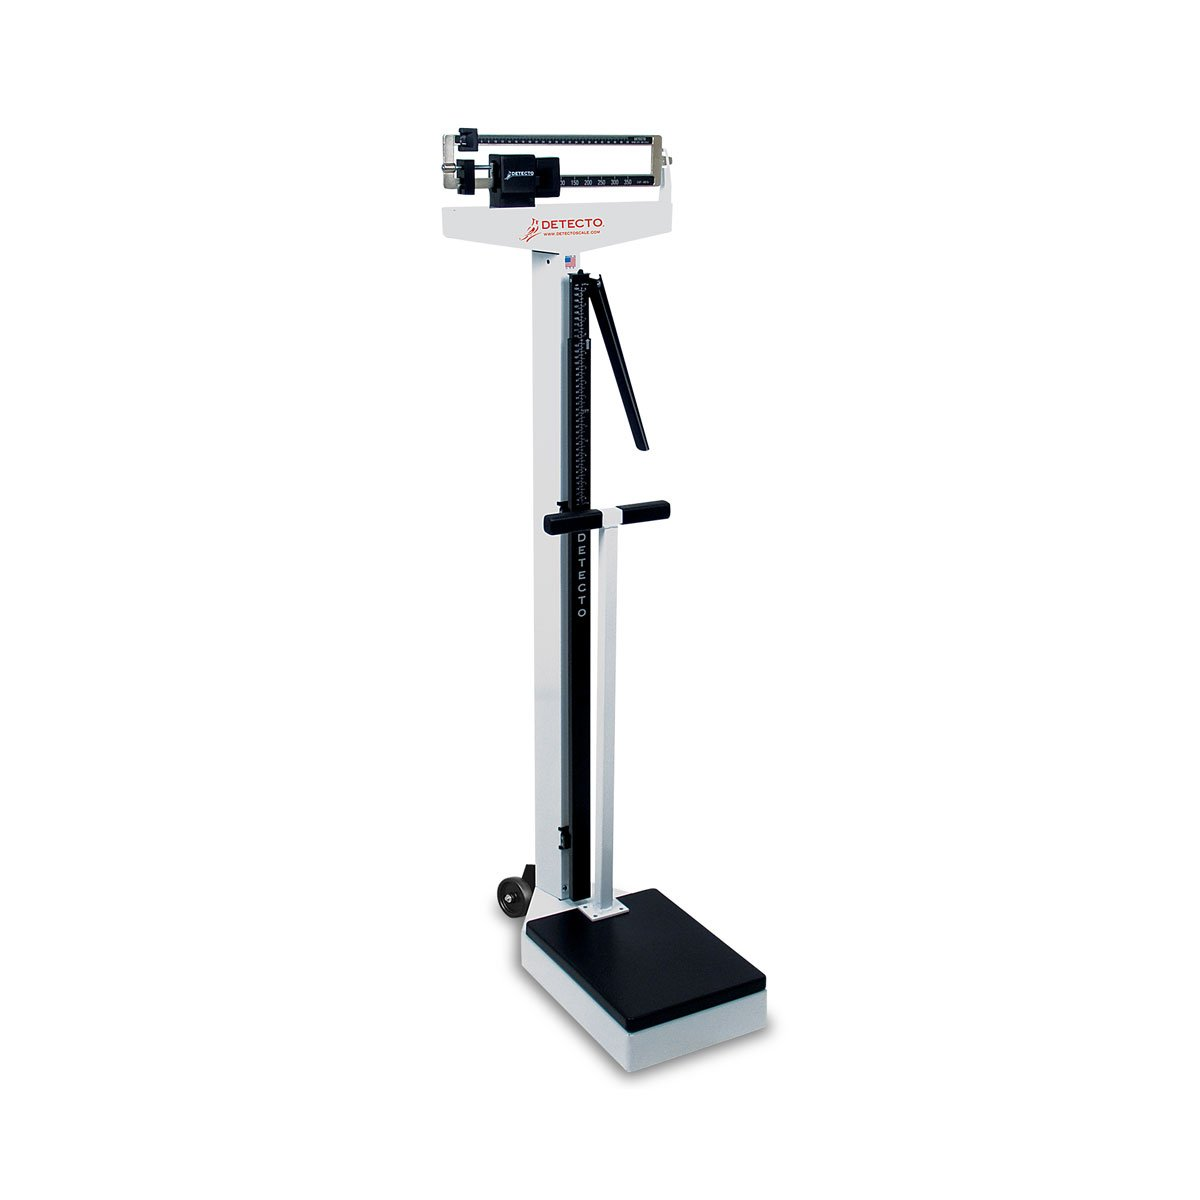 Detecto 448 Balance Beam Doctor/Physician Scale w/ Height Rod, Wheels & Hand Post, 400 lbs, Made in the USA